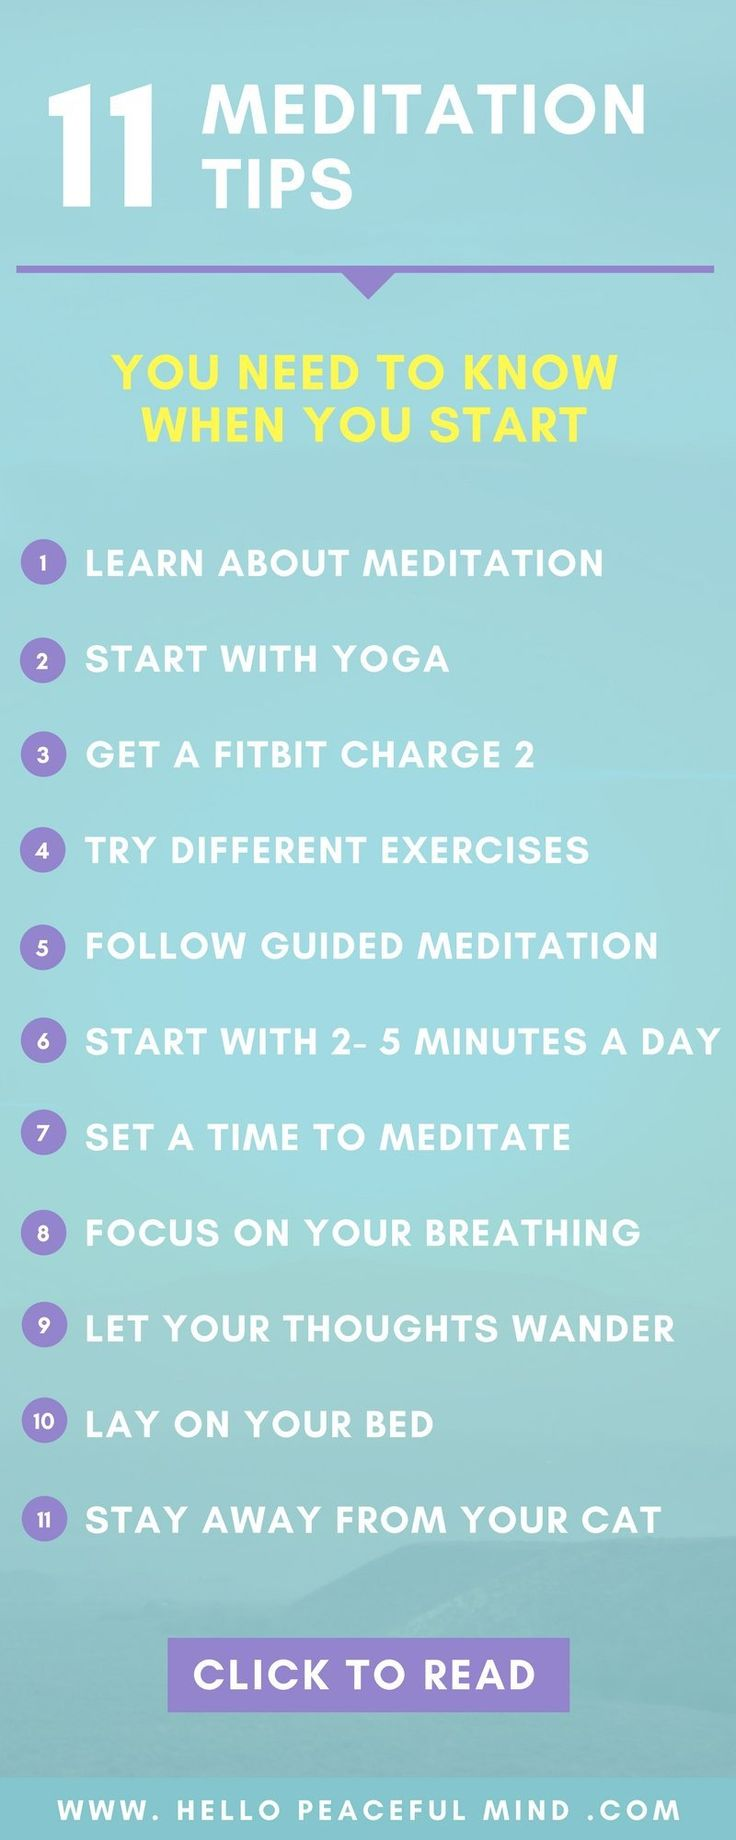 Find useful ressources to help you follow these 11 tips and learn how to meditate on www.HelloPeacefulMind.com